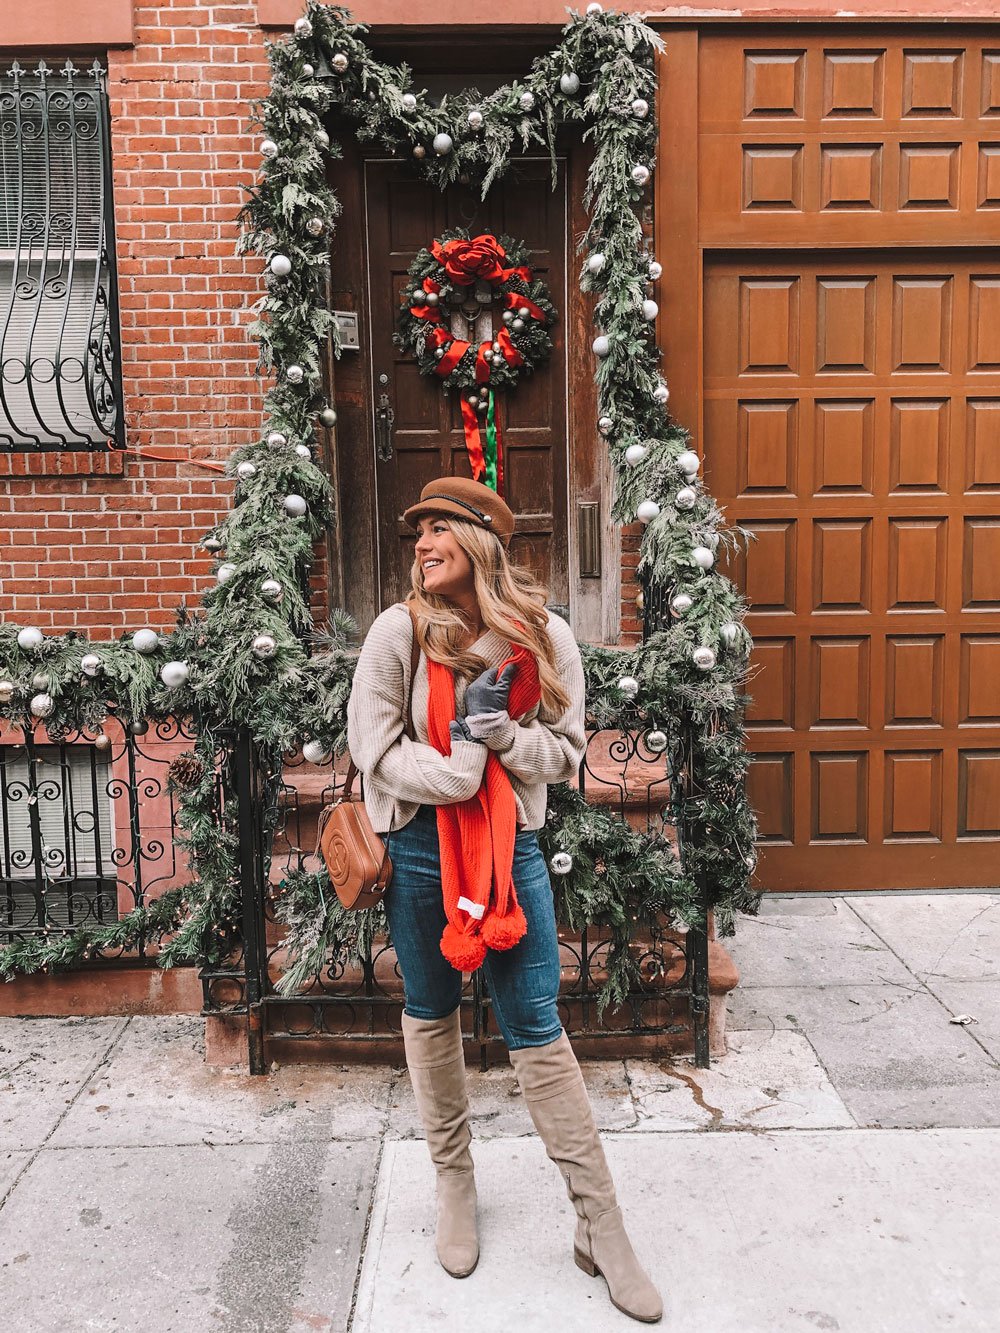 Blogger Amanda Martin shares her experience in New York City at Christmas